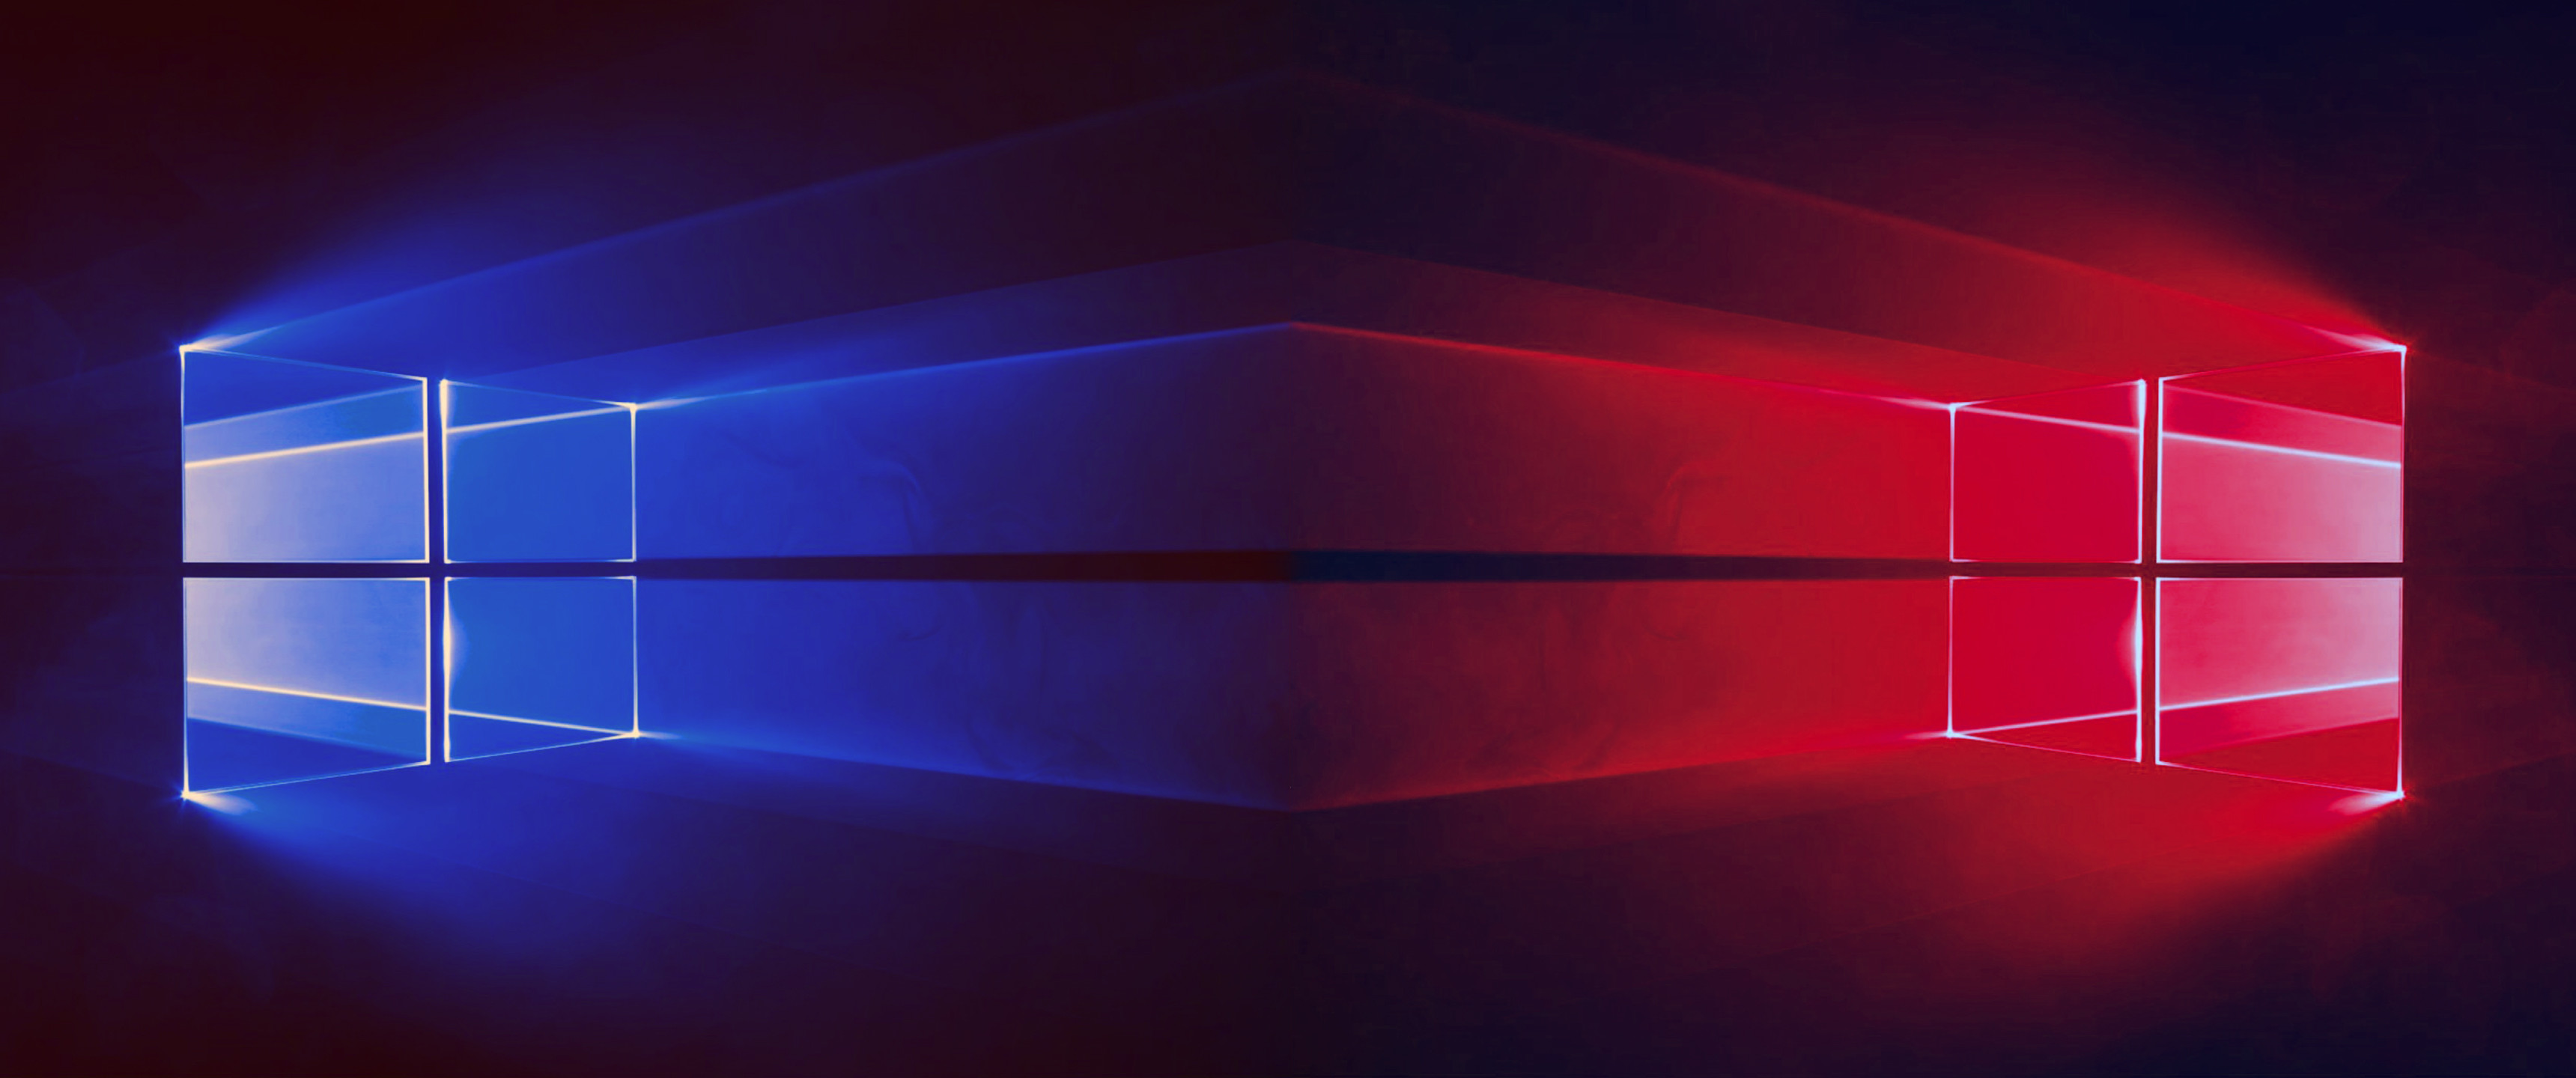 Red Windows 10 Wallpaper Hd Window 10 Backgrounds Blue And Red 3440x1440 Wallpaper Teahub Io